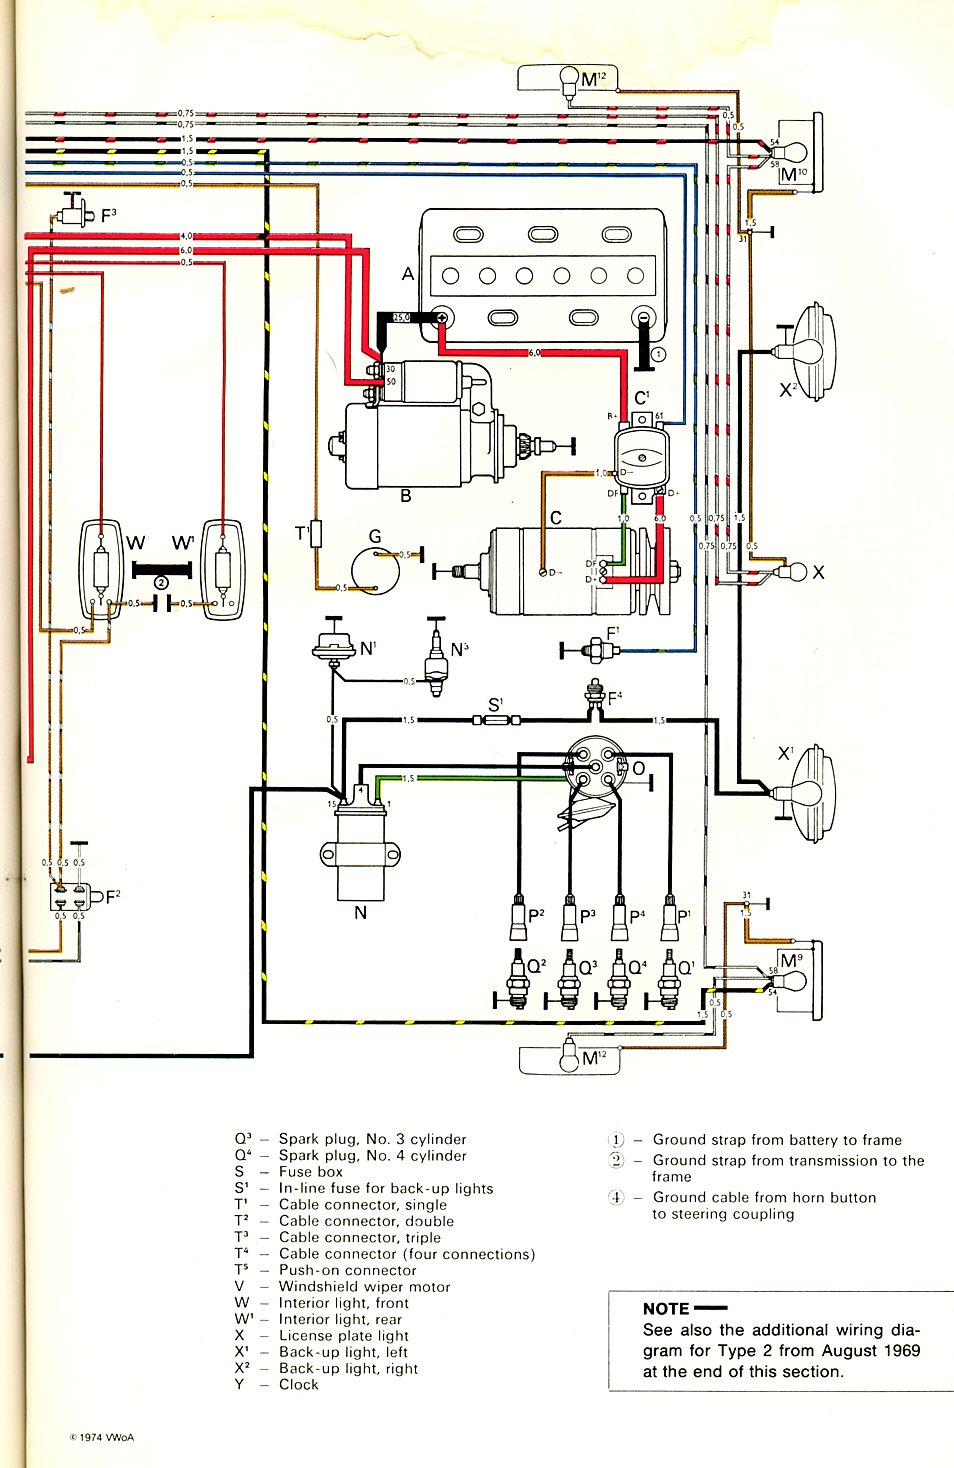 Baybus B on 74 corvette wiring diagram